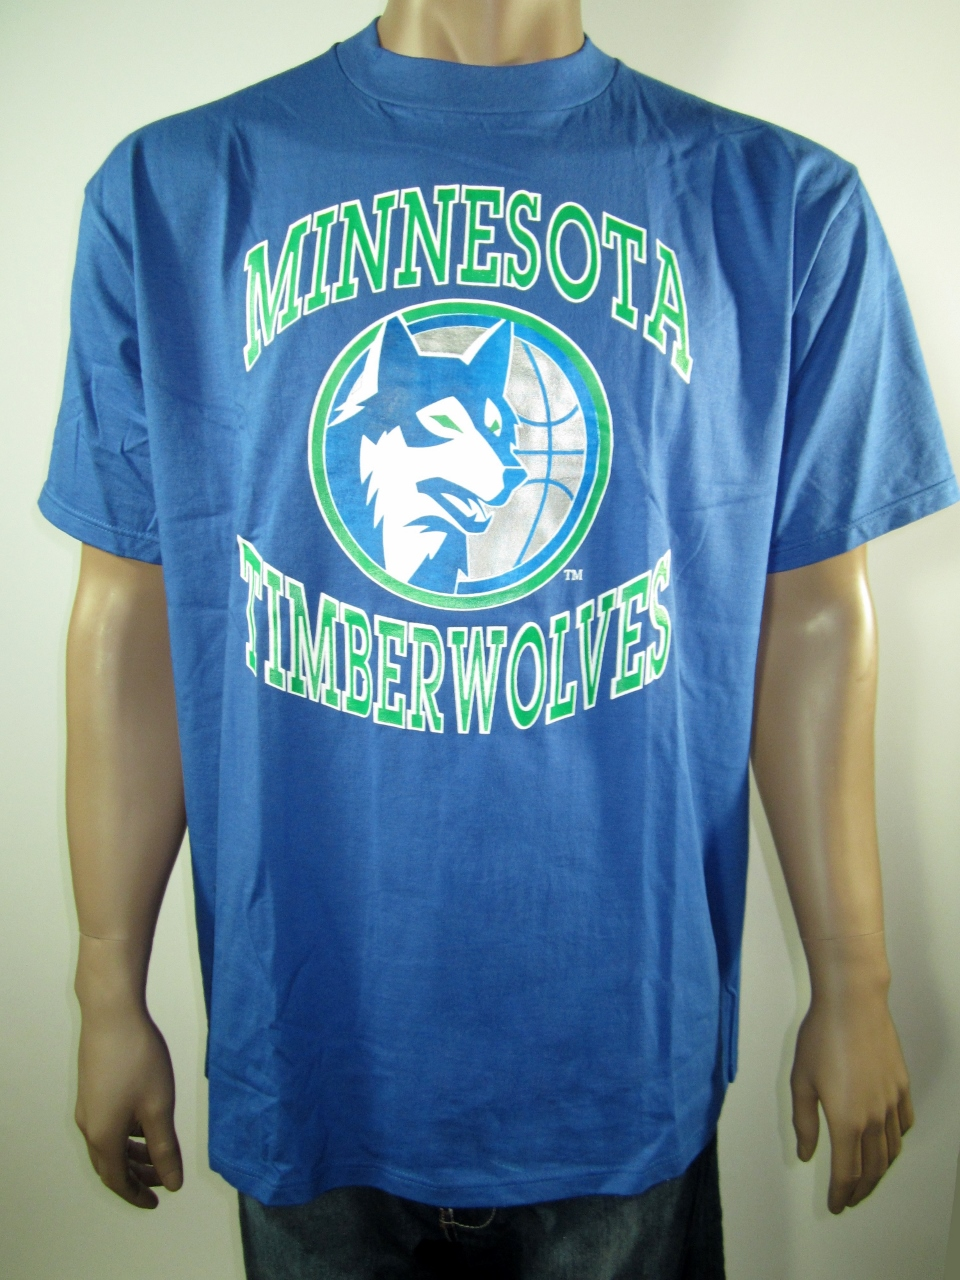 low priced 81c4e c49d7 Vintage NBA Minnesota Timberwolves Swingster T-Shirt XL NWT from DFRNSH8